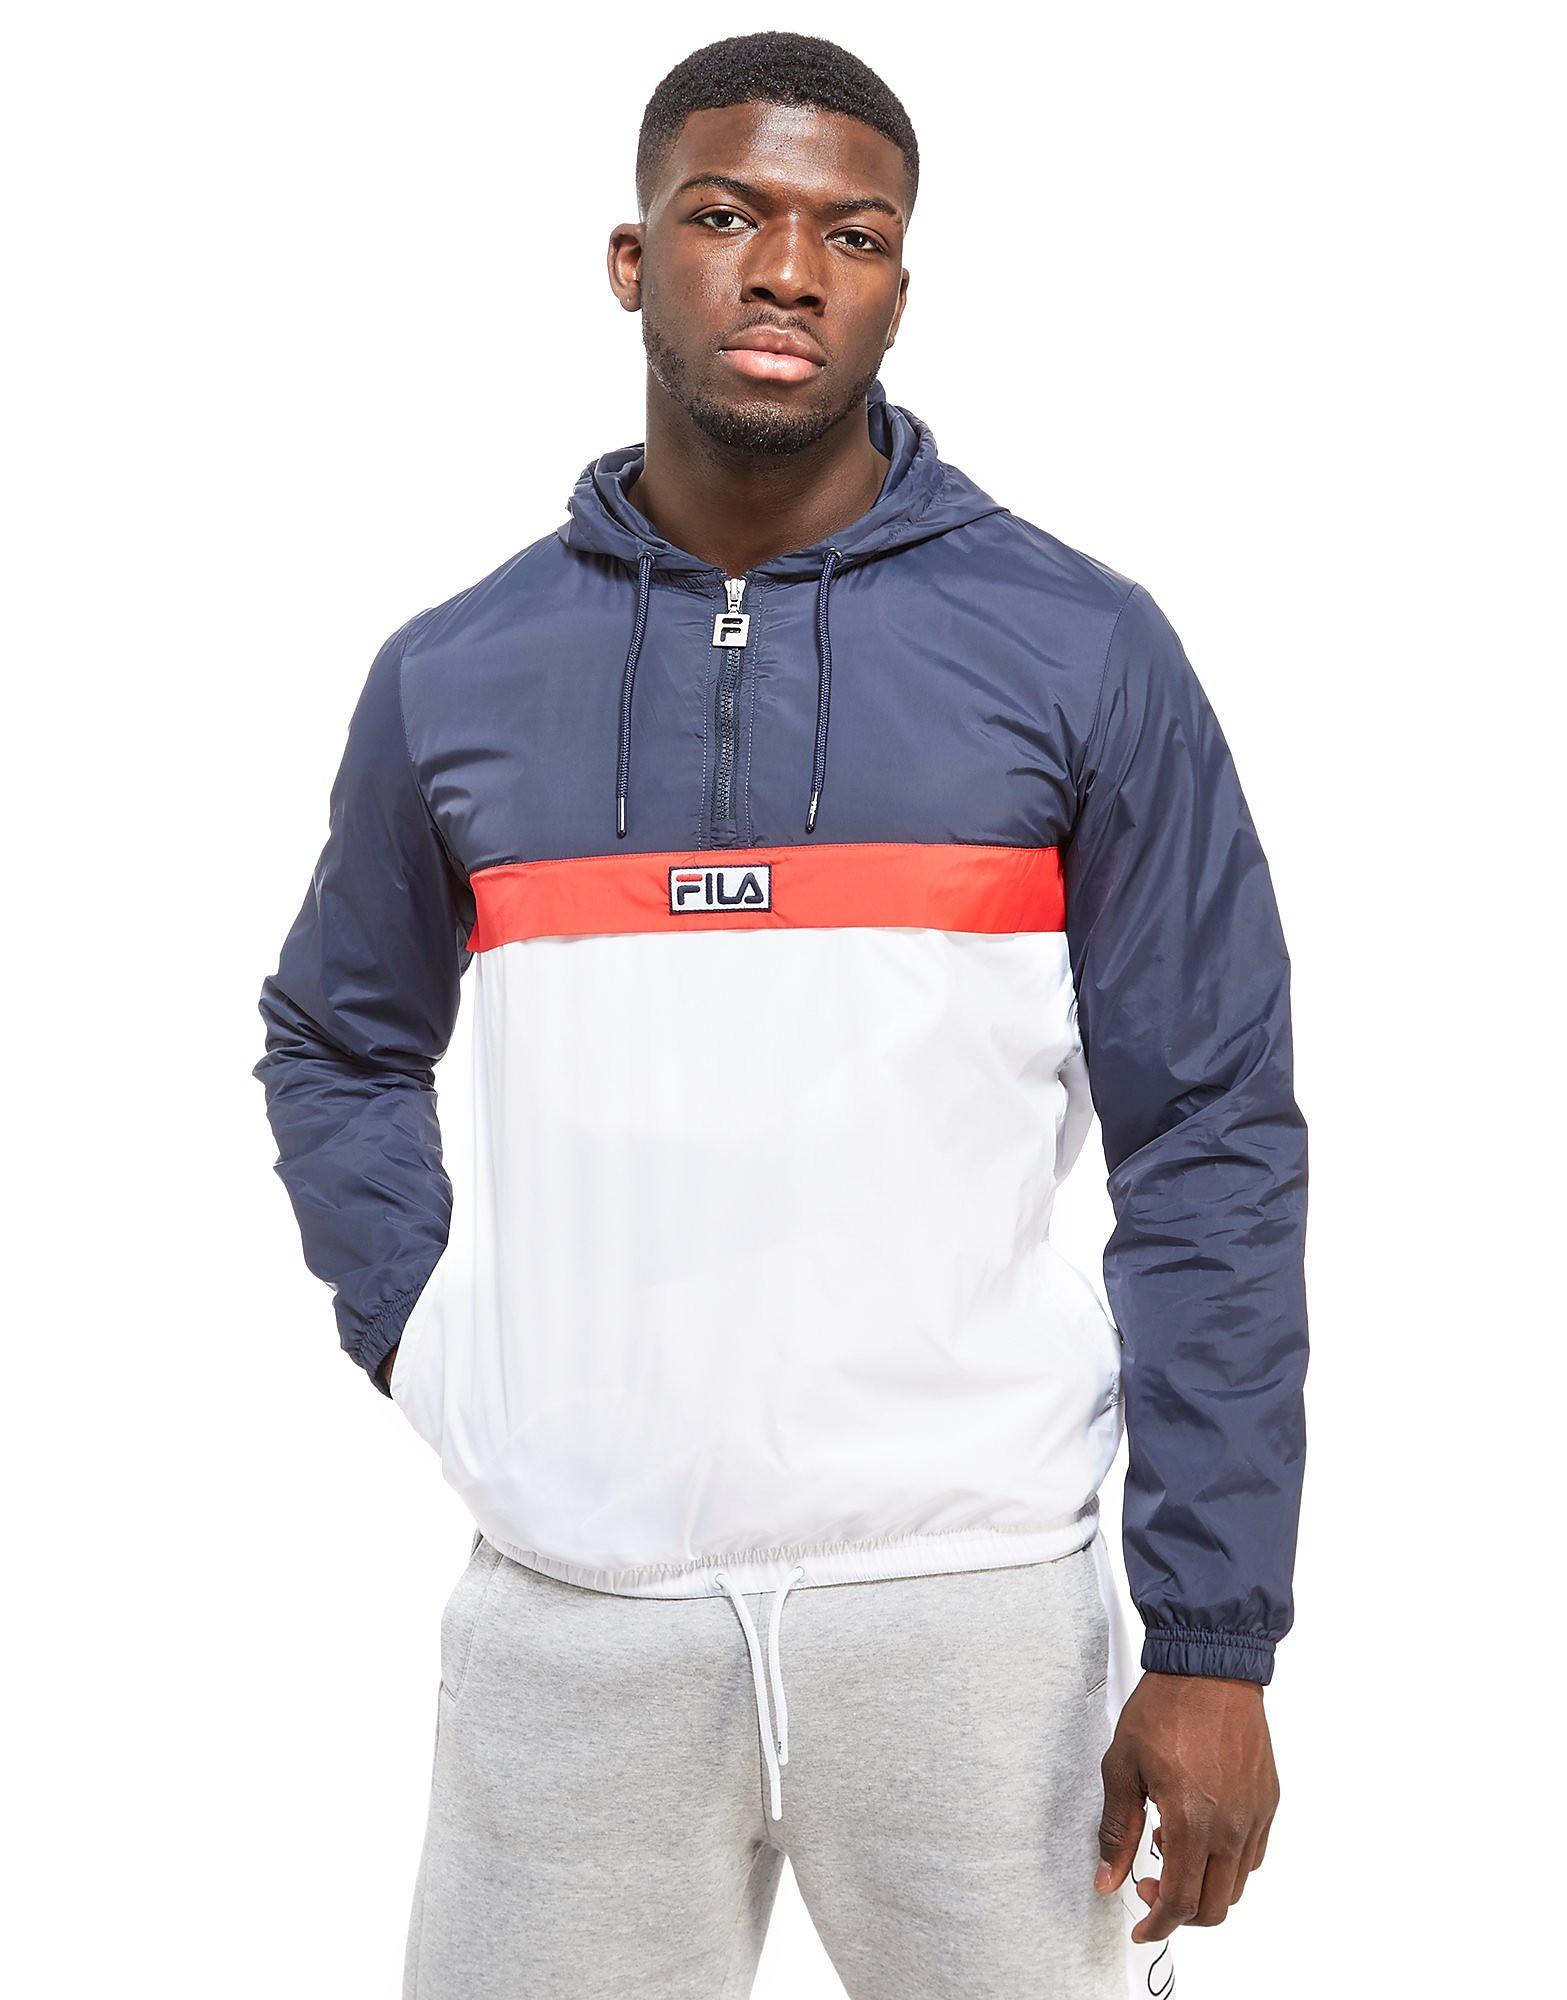 Fila Greene 1/4 Zip Jacket